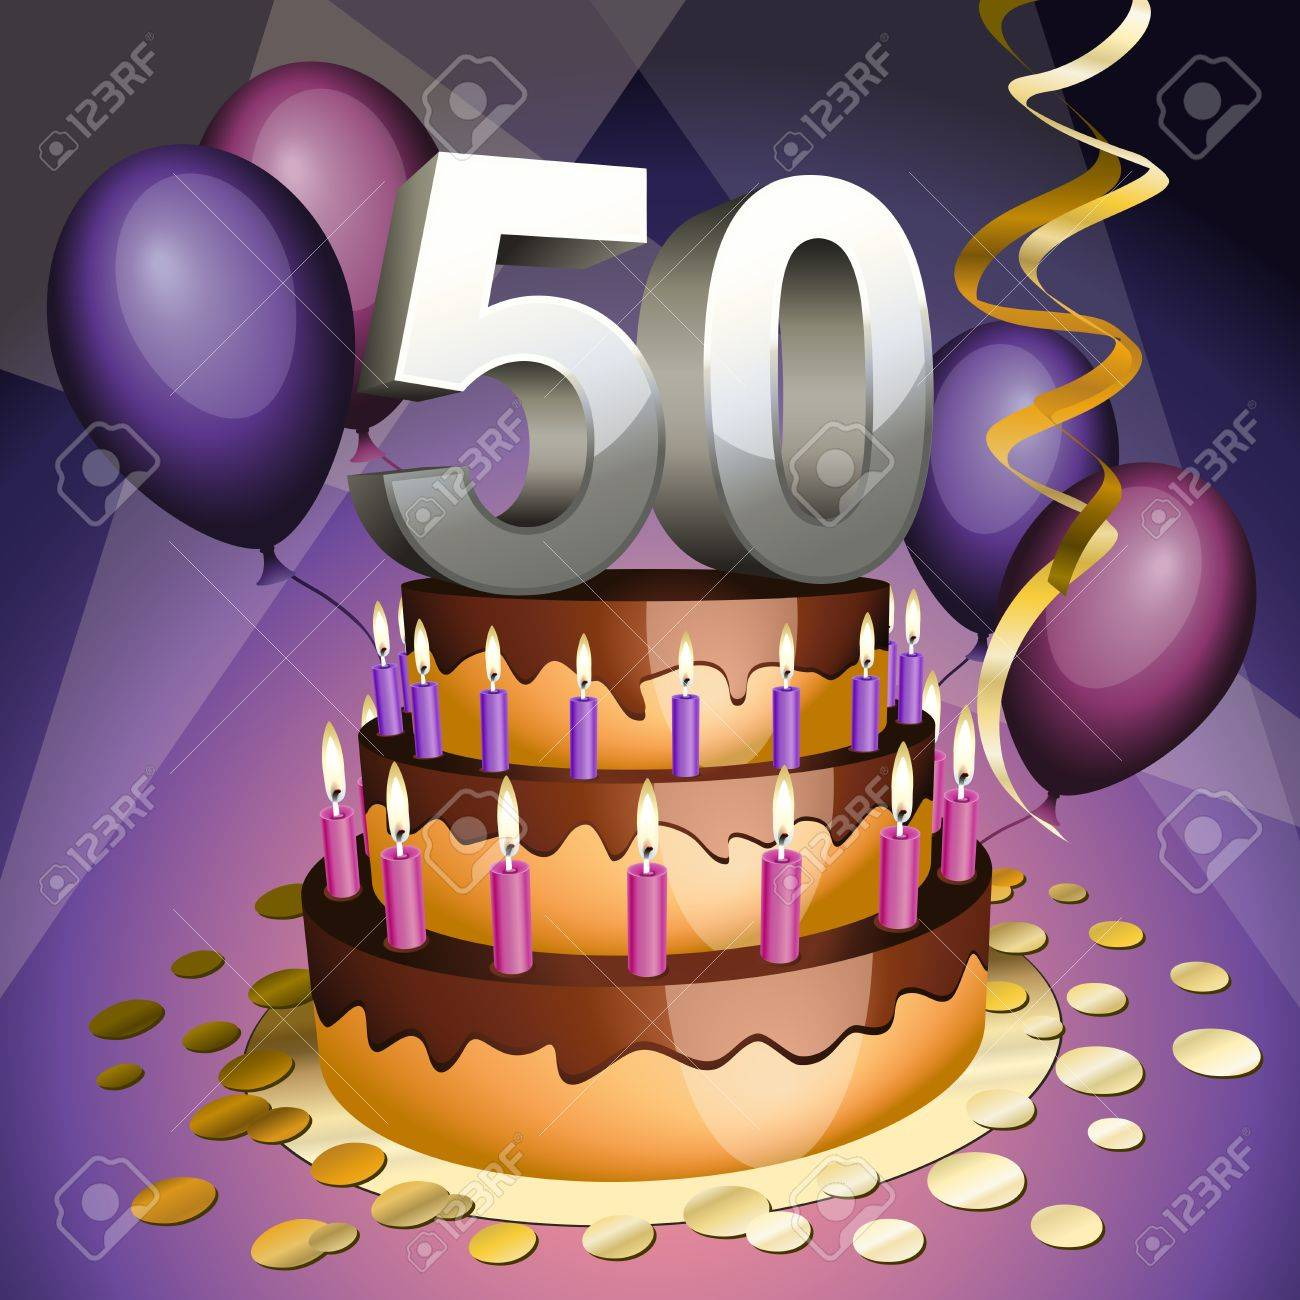 Fiftieth anniversary cake with numbers, candles and balloons Stock Vector - 9603879